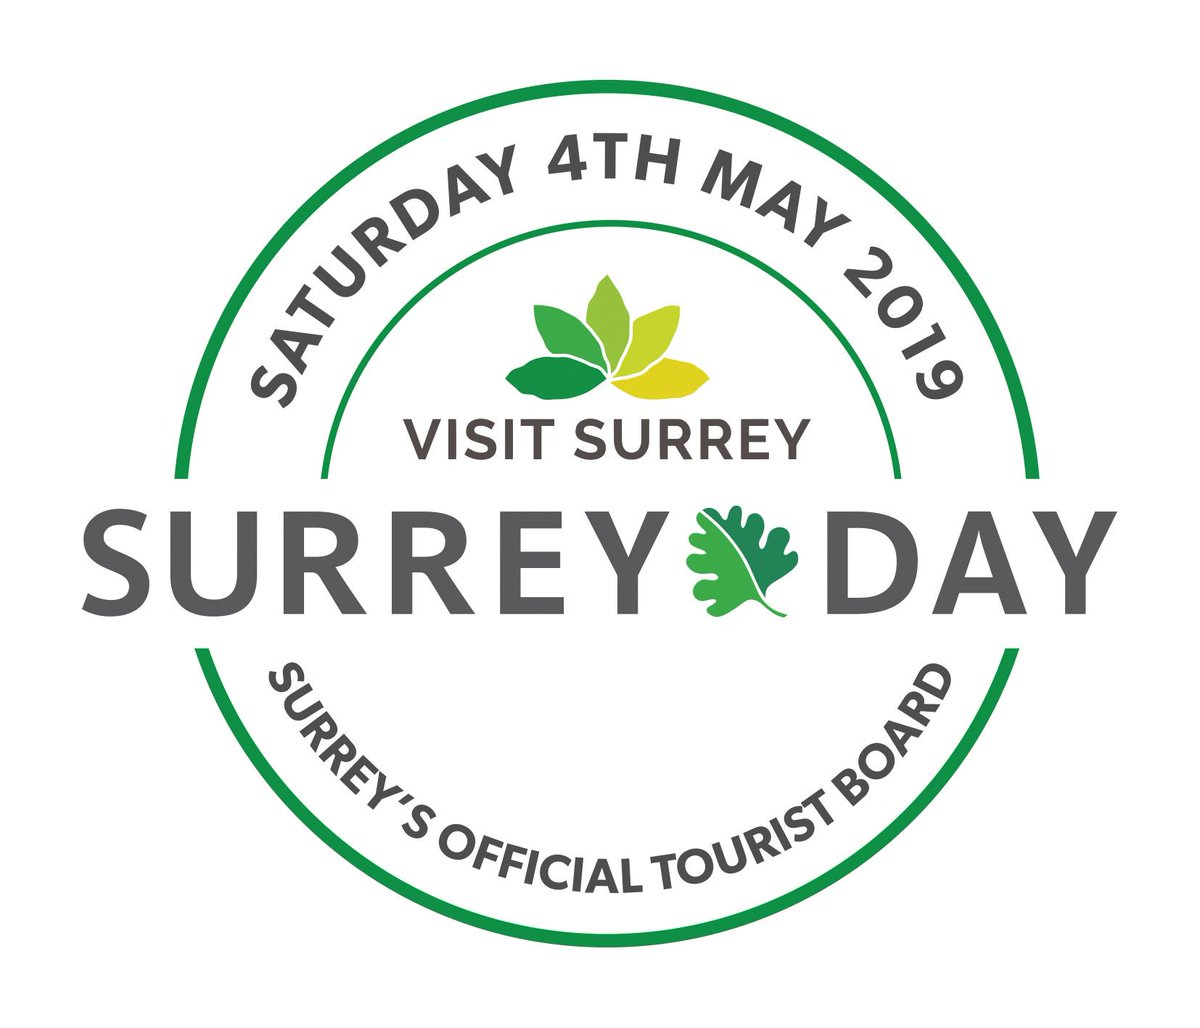 RT @VisitSurrey Great news, not only is it #SurreyDay this weekend it is also another long #BankHolidayWeekend. 😀 Take a look at our guide for ideas to help make your weekend in #Surrey special. 👀 👉 https://t.co/yf5EeMJhPW @BWCtweets  @SurreyHillsAONB  @LoseleyPark